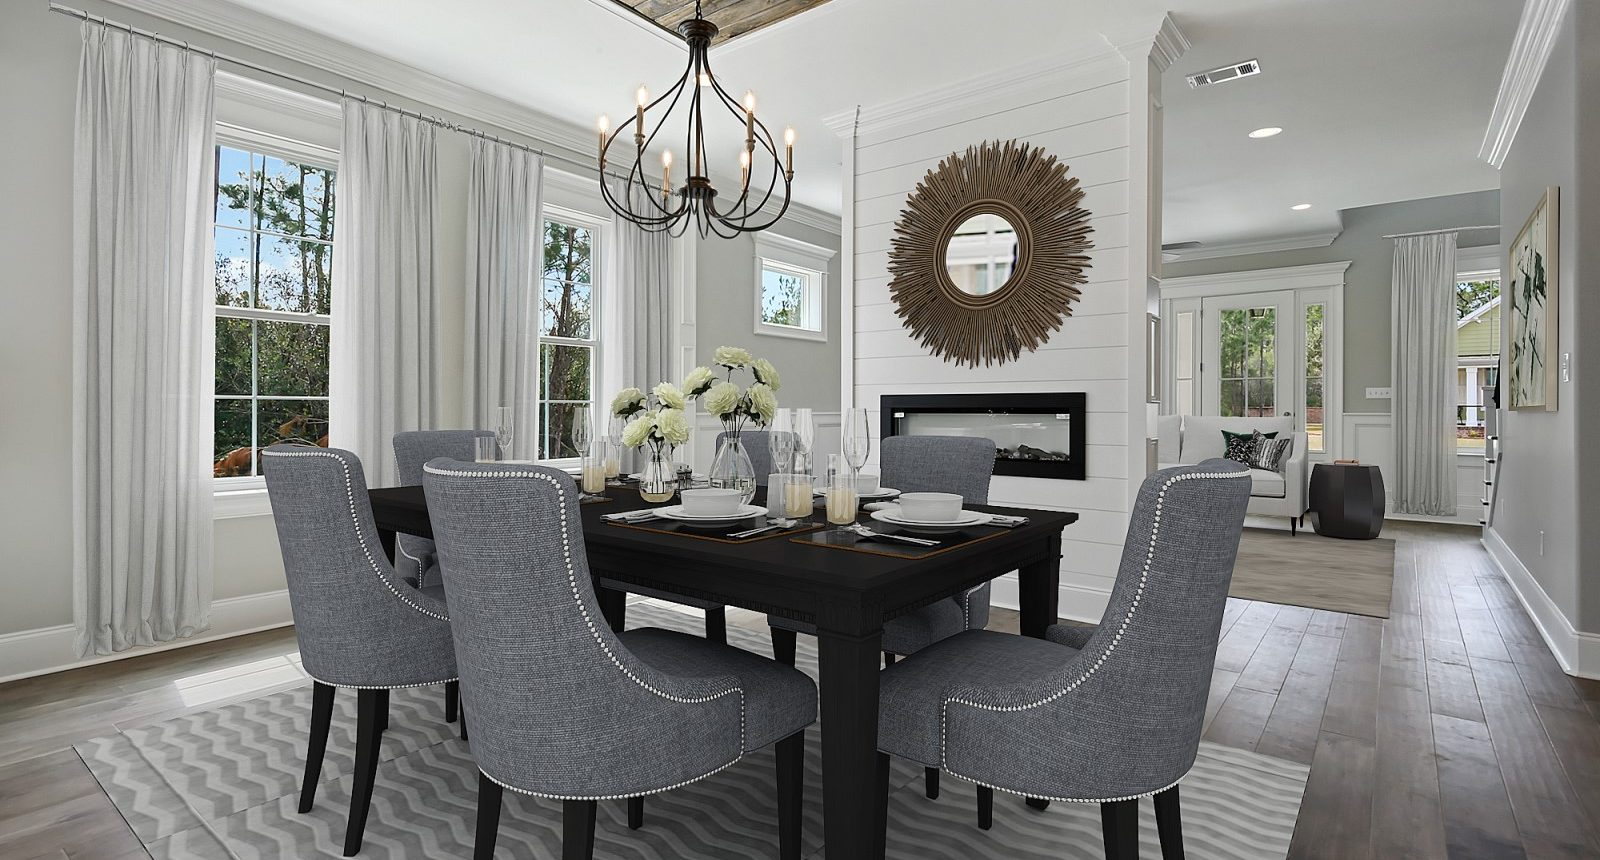 Dining room with double-sided fireplace